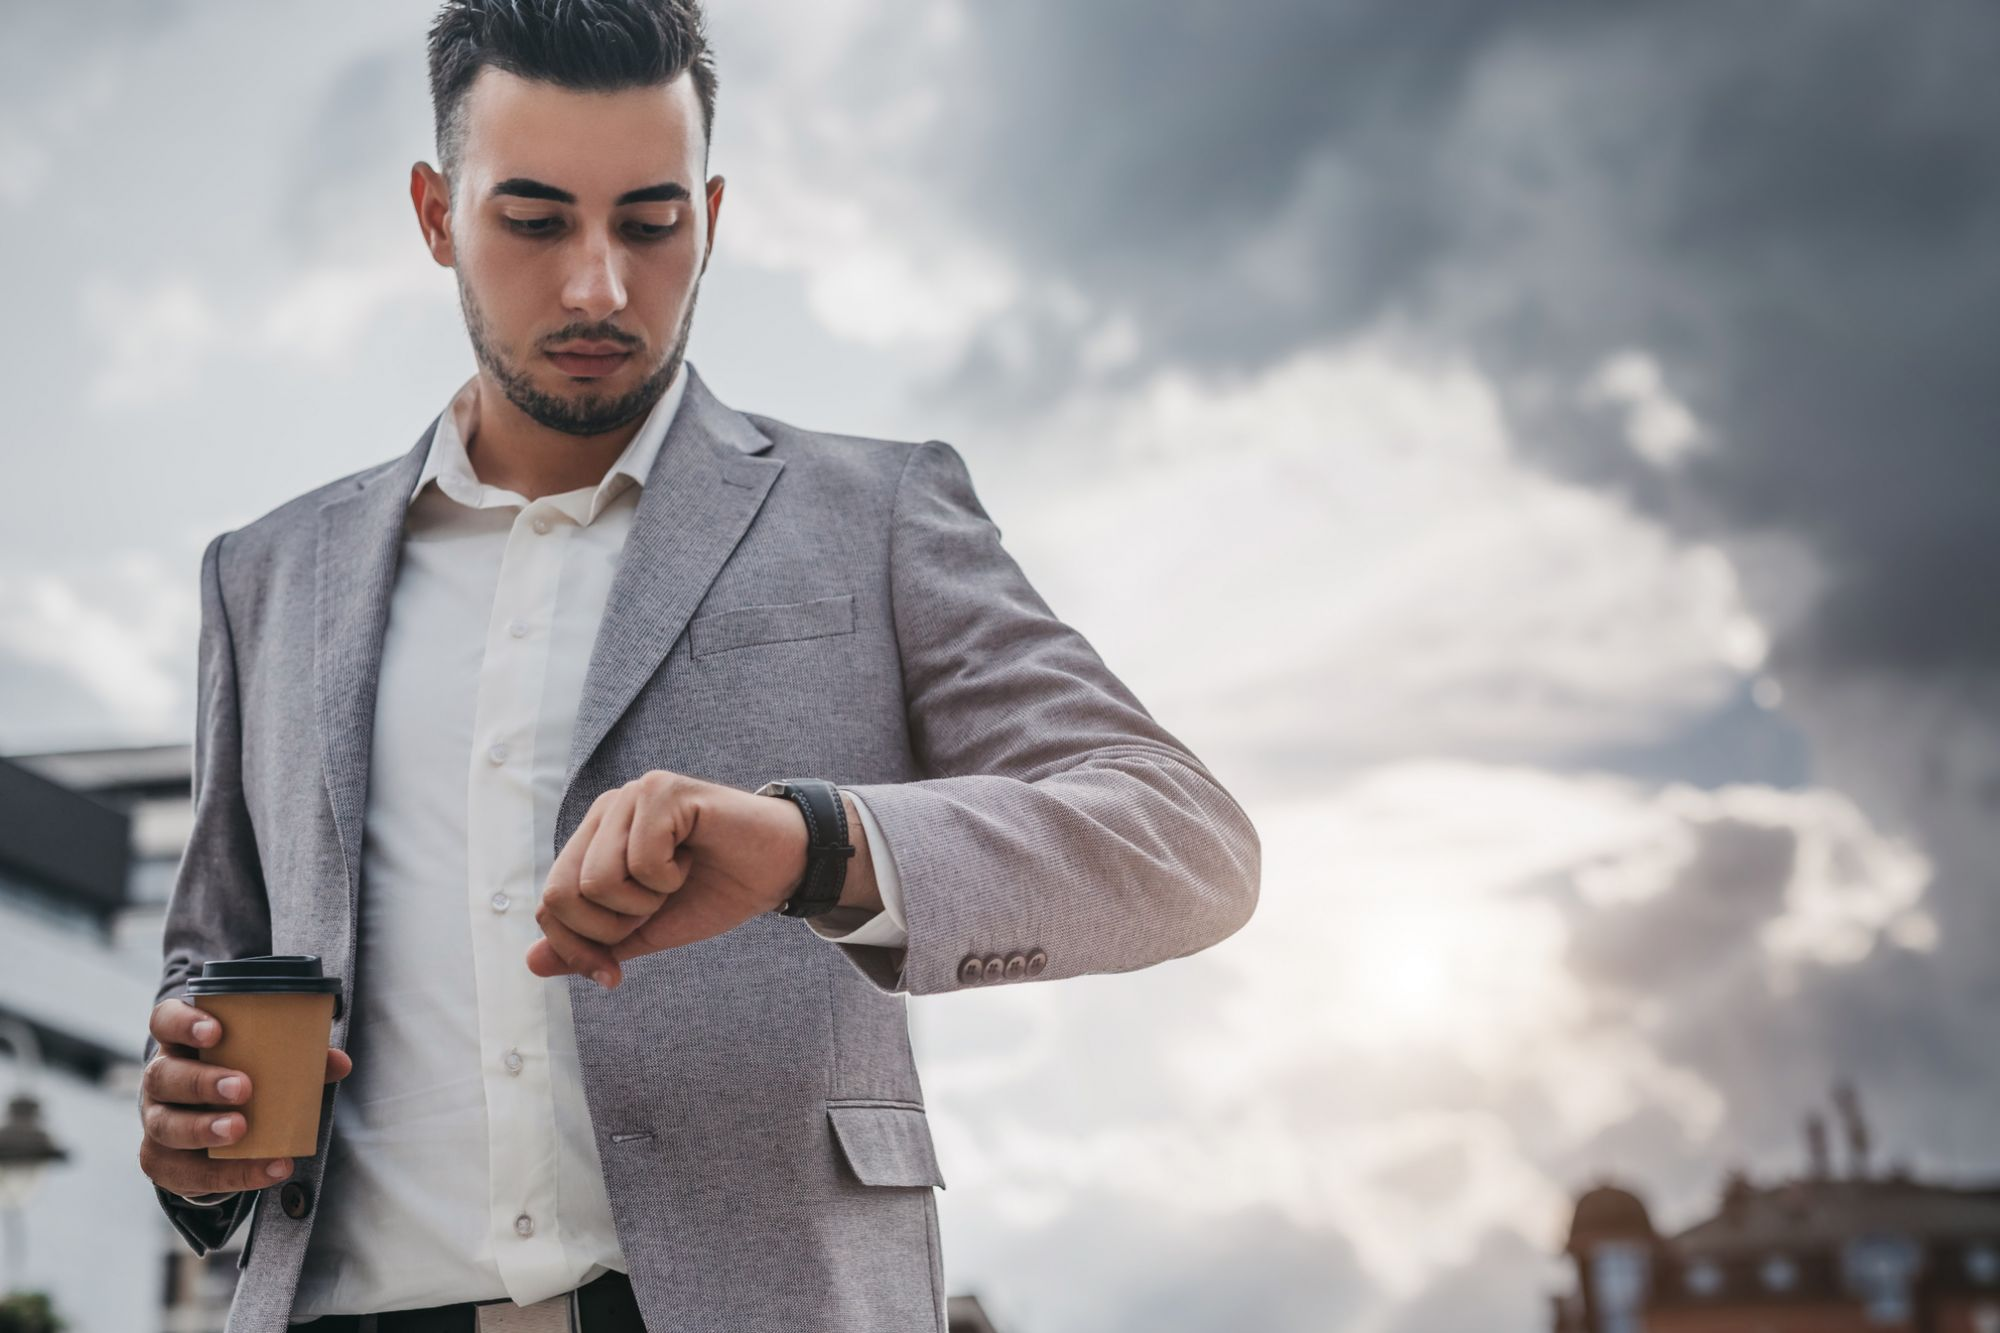 4 Tactics You Can Implement to Become an Elite Entrepreneur